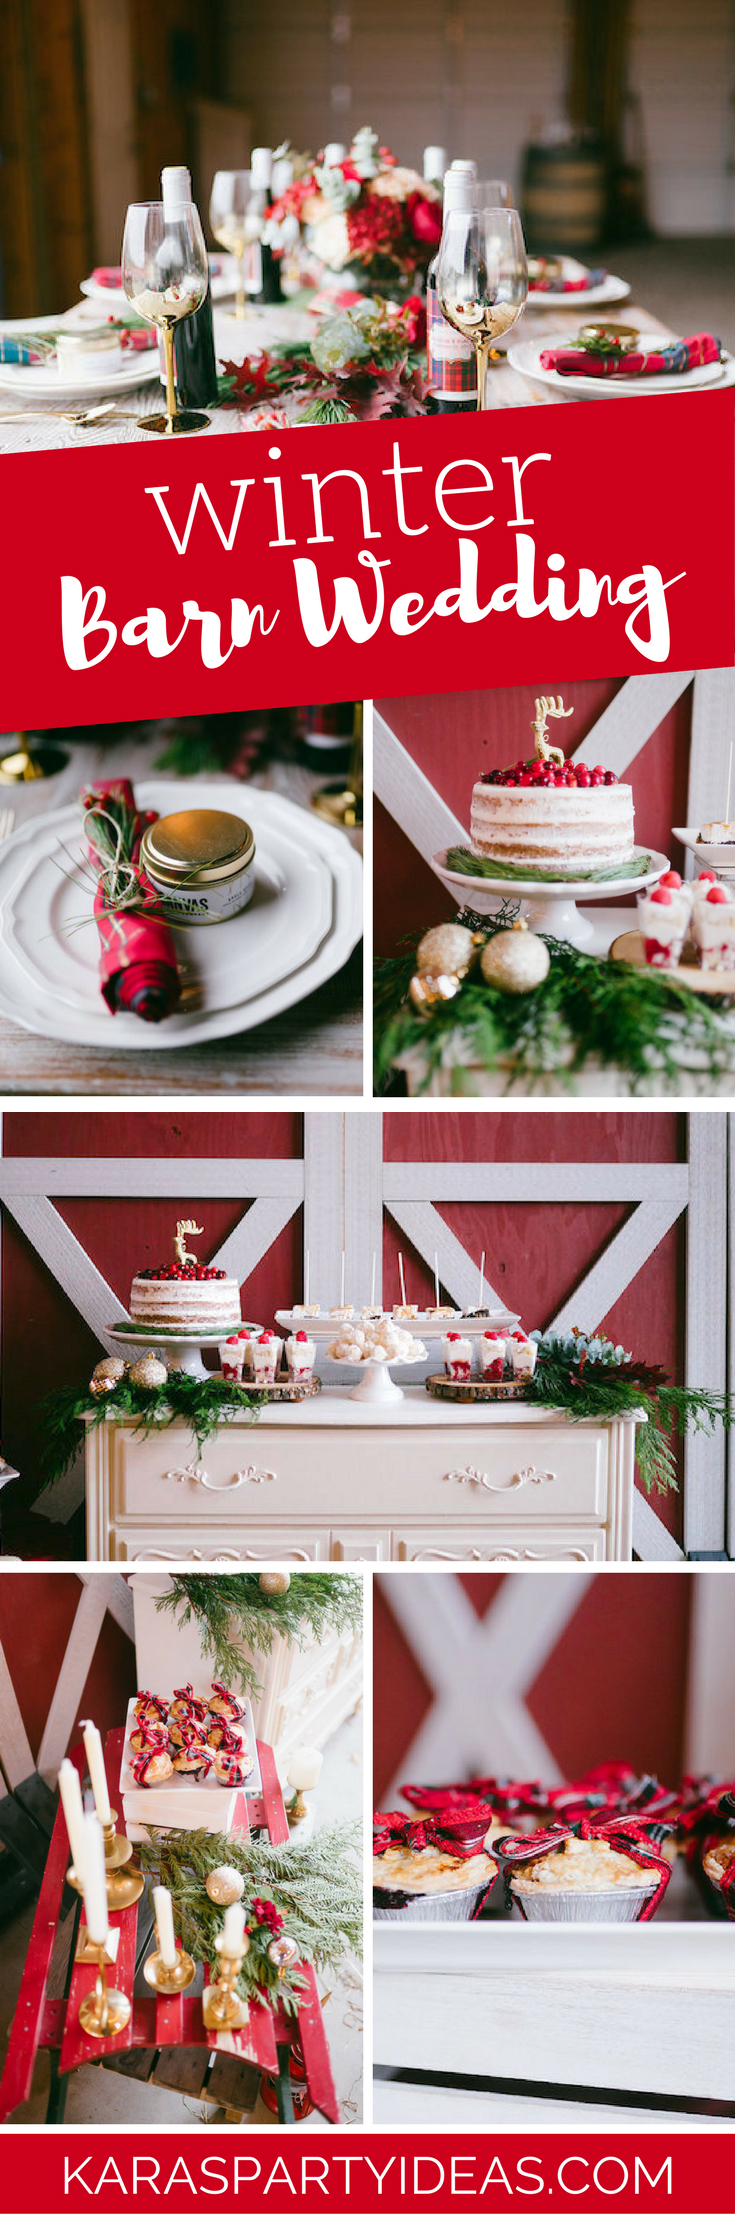 Winter Barn Wedding via Kara's Party Ideas - KarasPartyIdeas.com